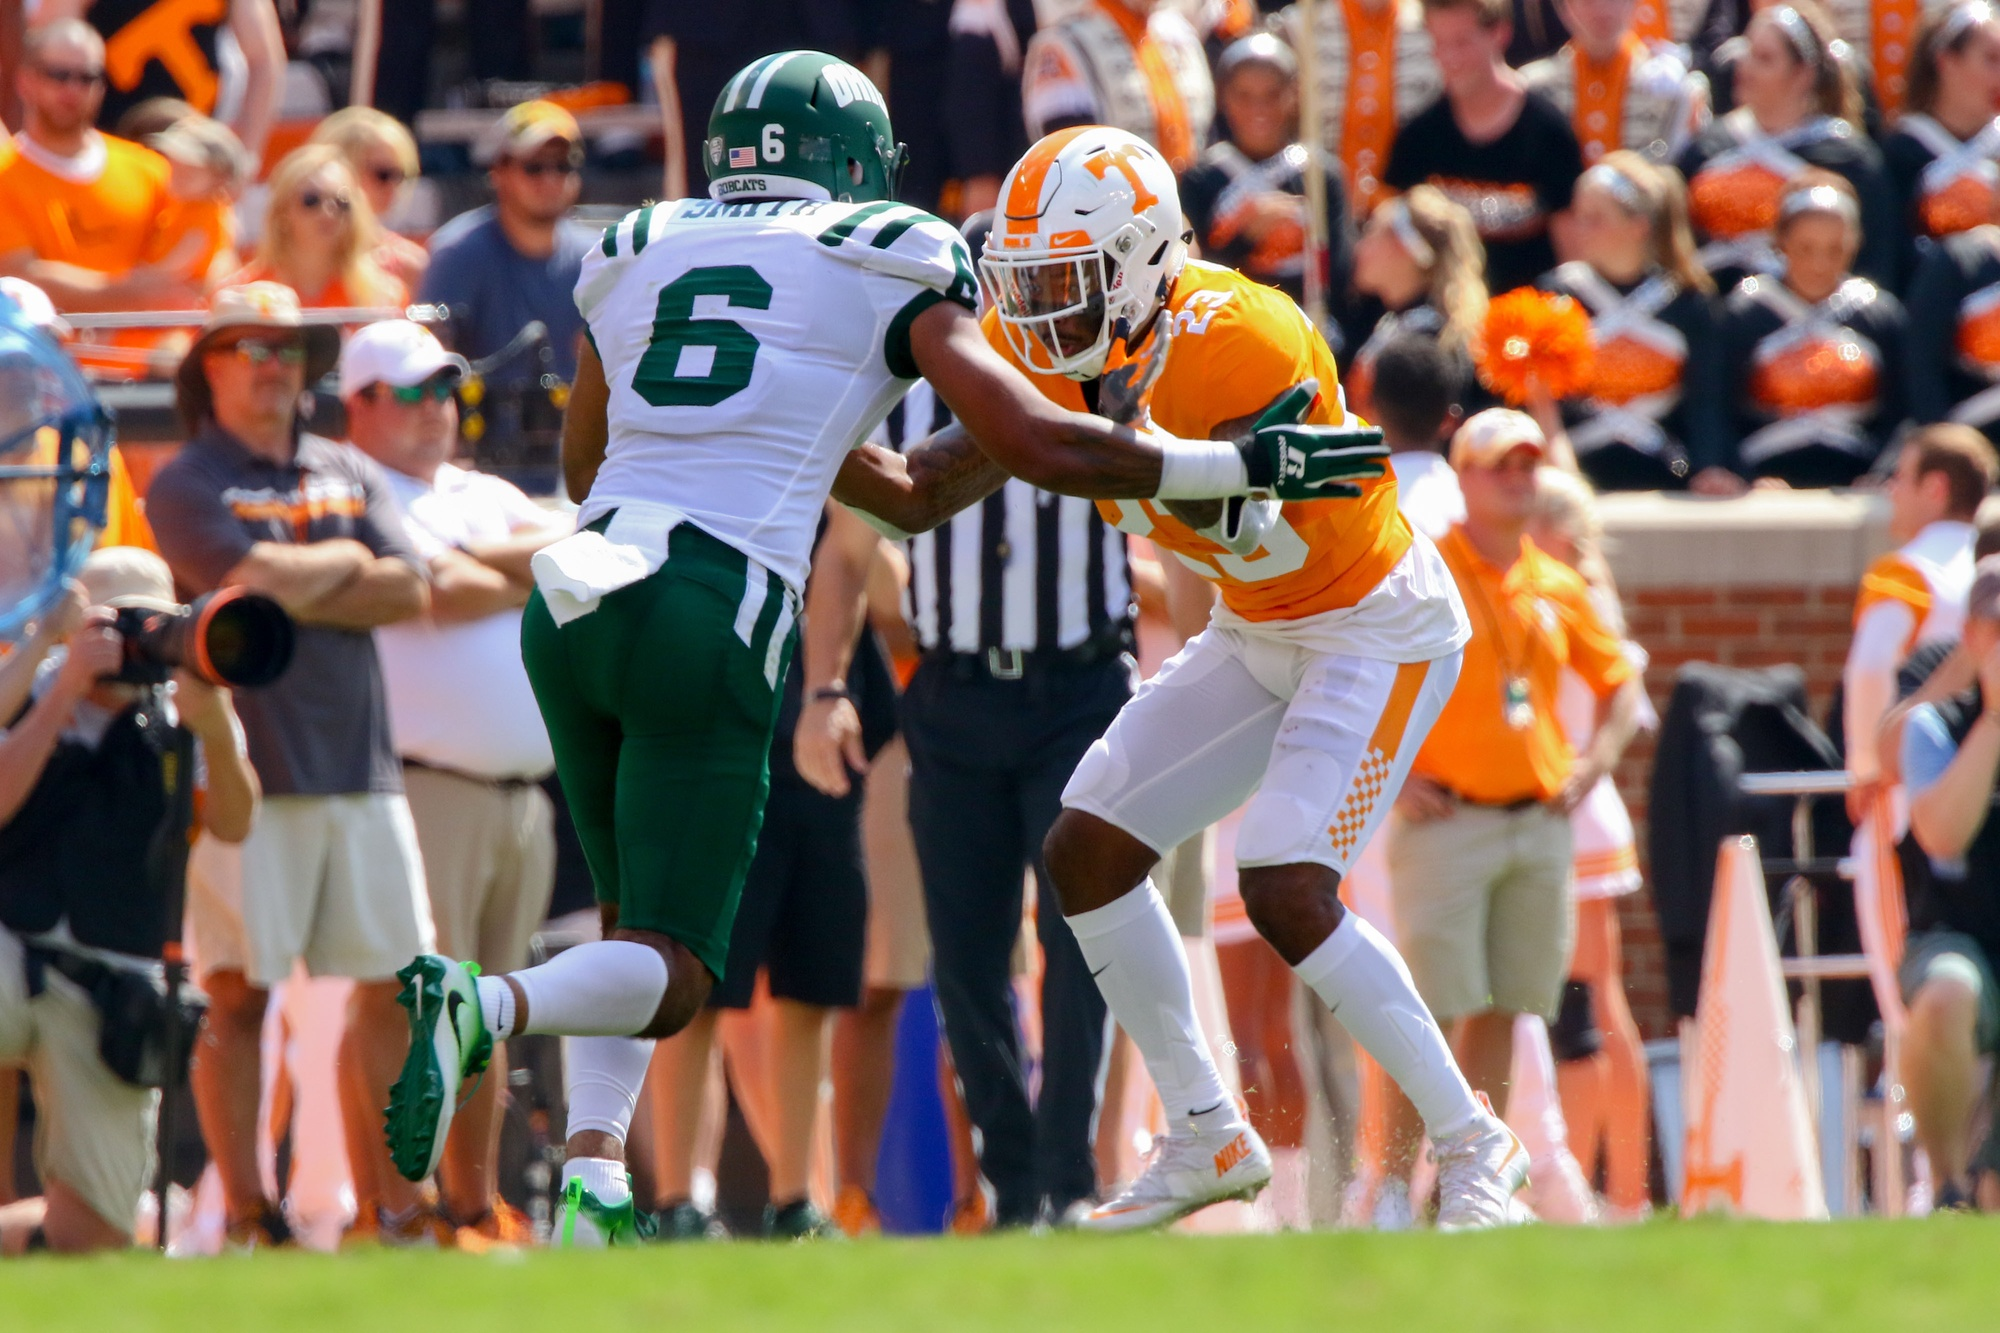 Sep 17, 2016; Knoxville, TN, USA; Ohio Bobcats wide receiver Sebastian Smith (6) and Tennessee Volunteers defensive back Cameron Sutton (23) during the first quarter at Neyland Stadium. Mandatory Credit: Randy Sartin-USA TODAY Sports